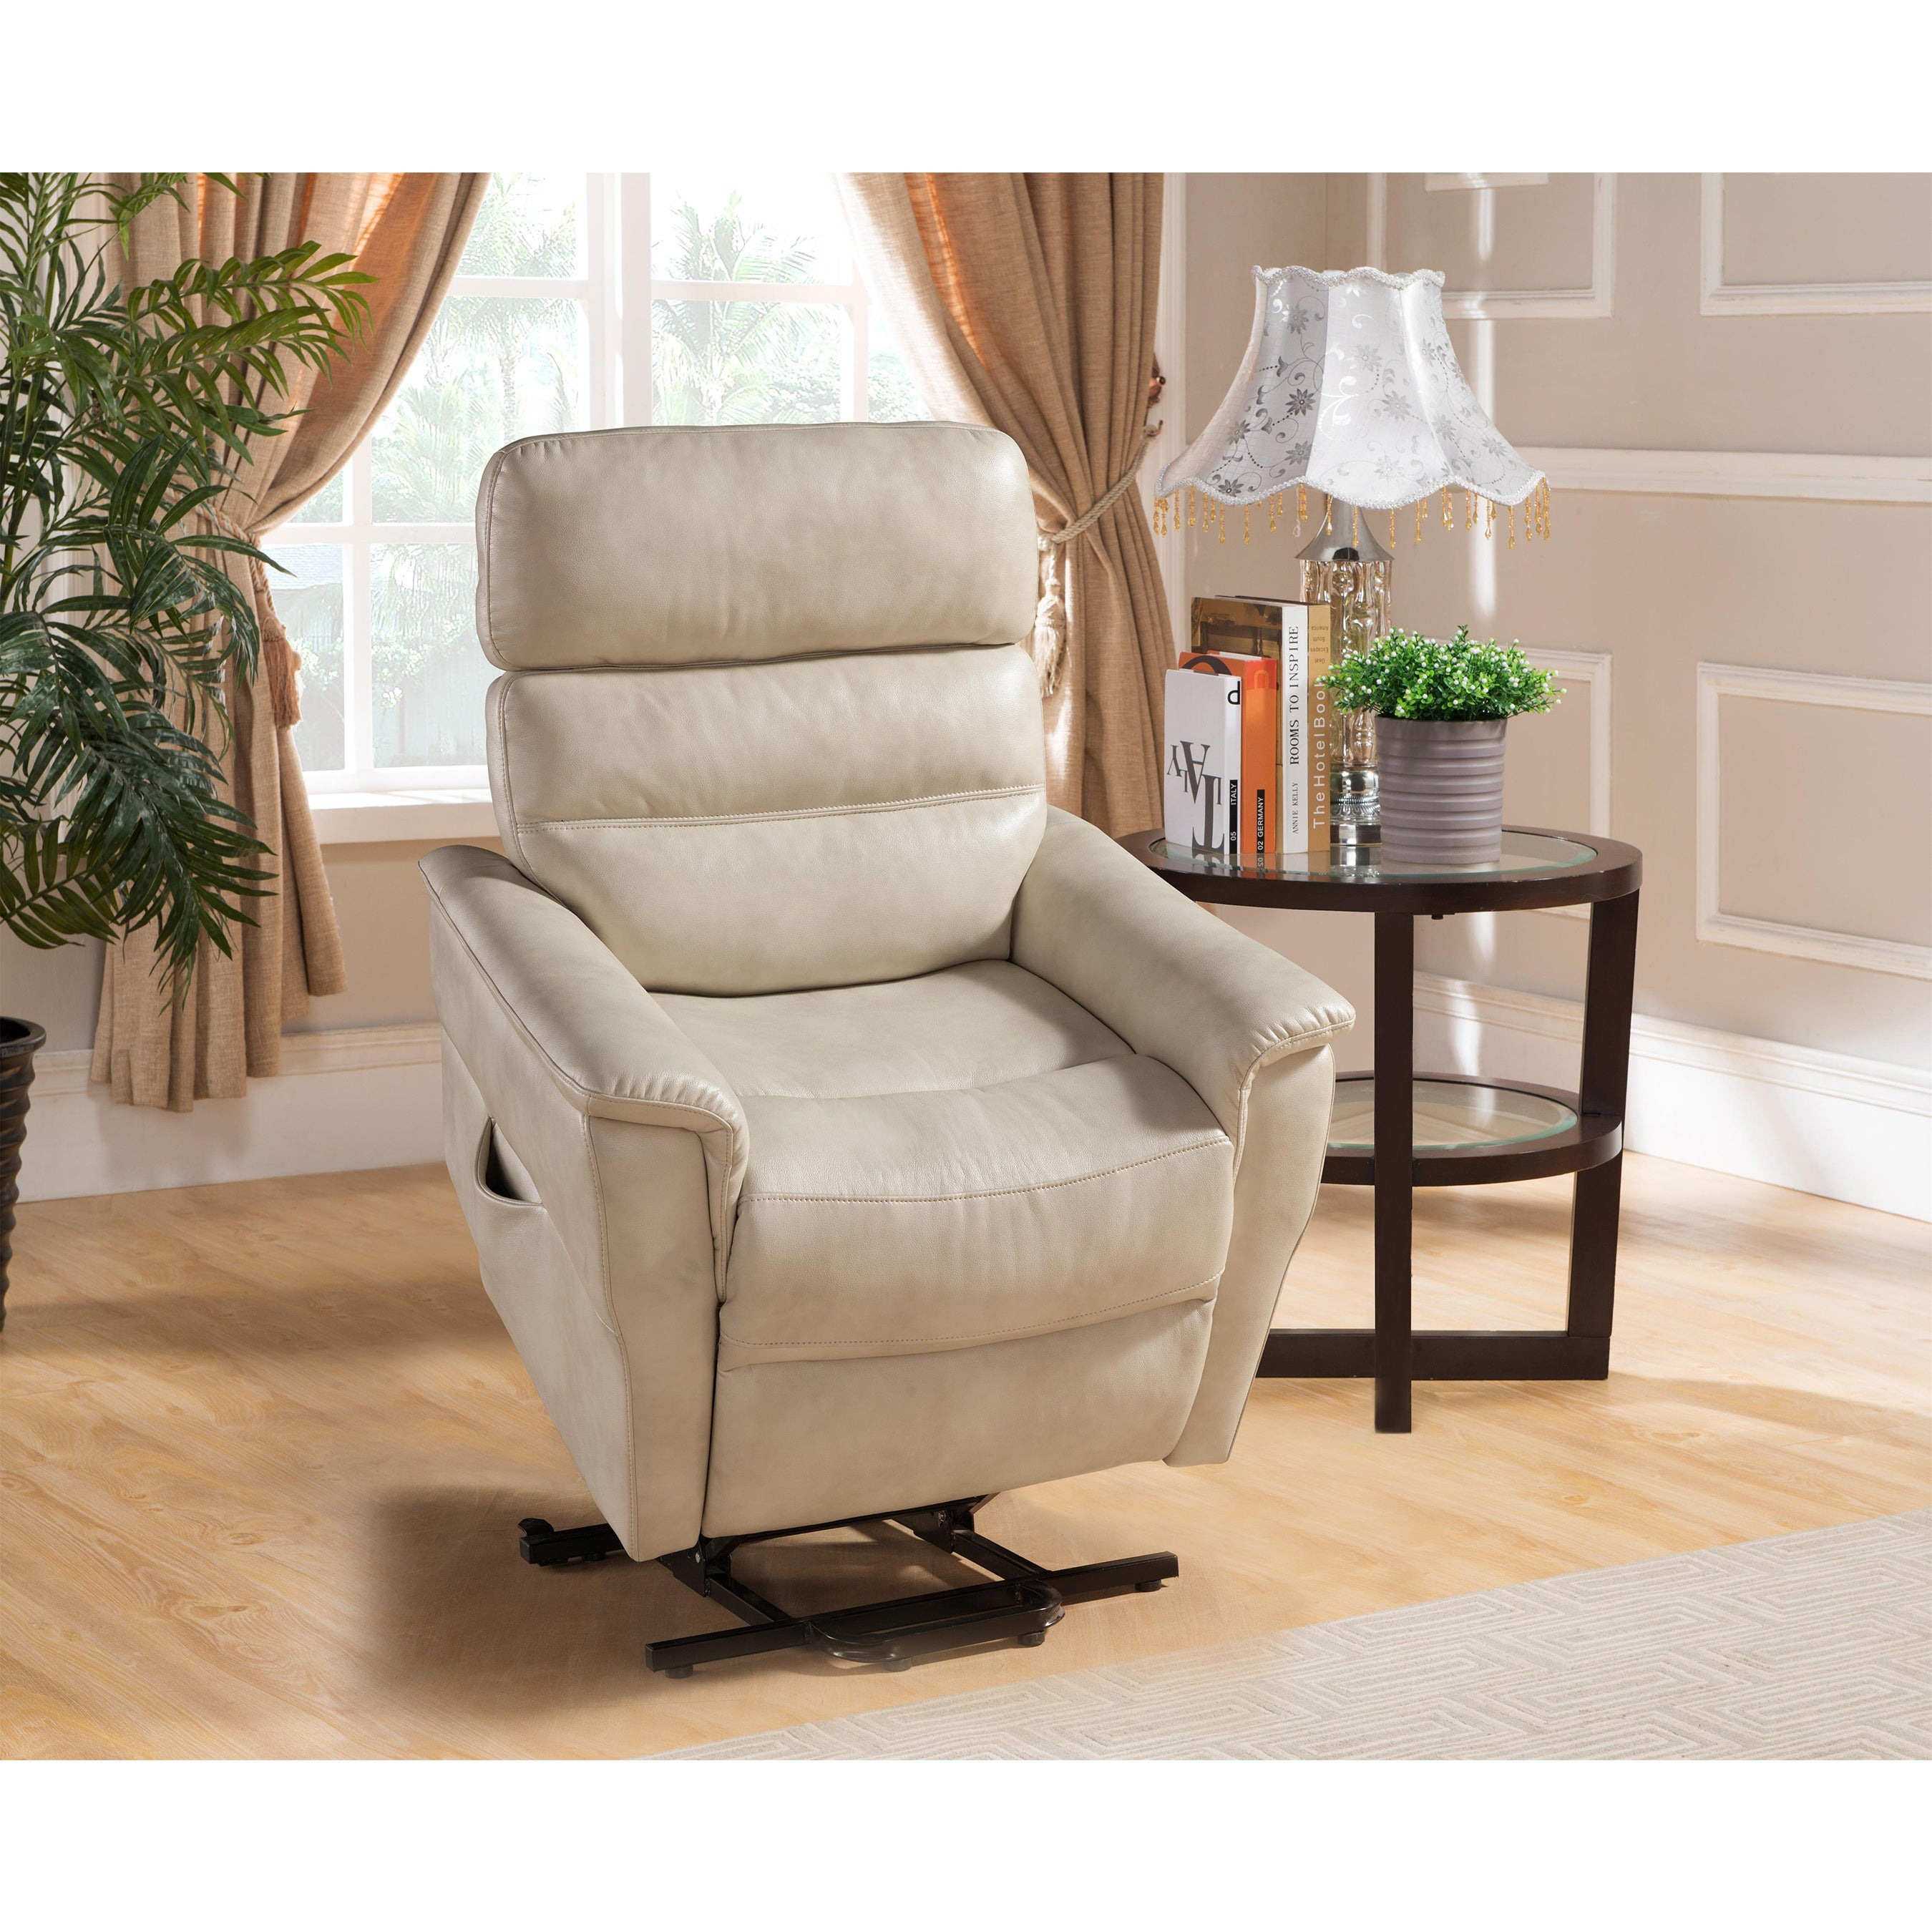 Shop Avery Small Power Reading Recliner Lift Chair - Free ...